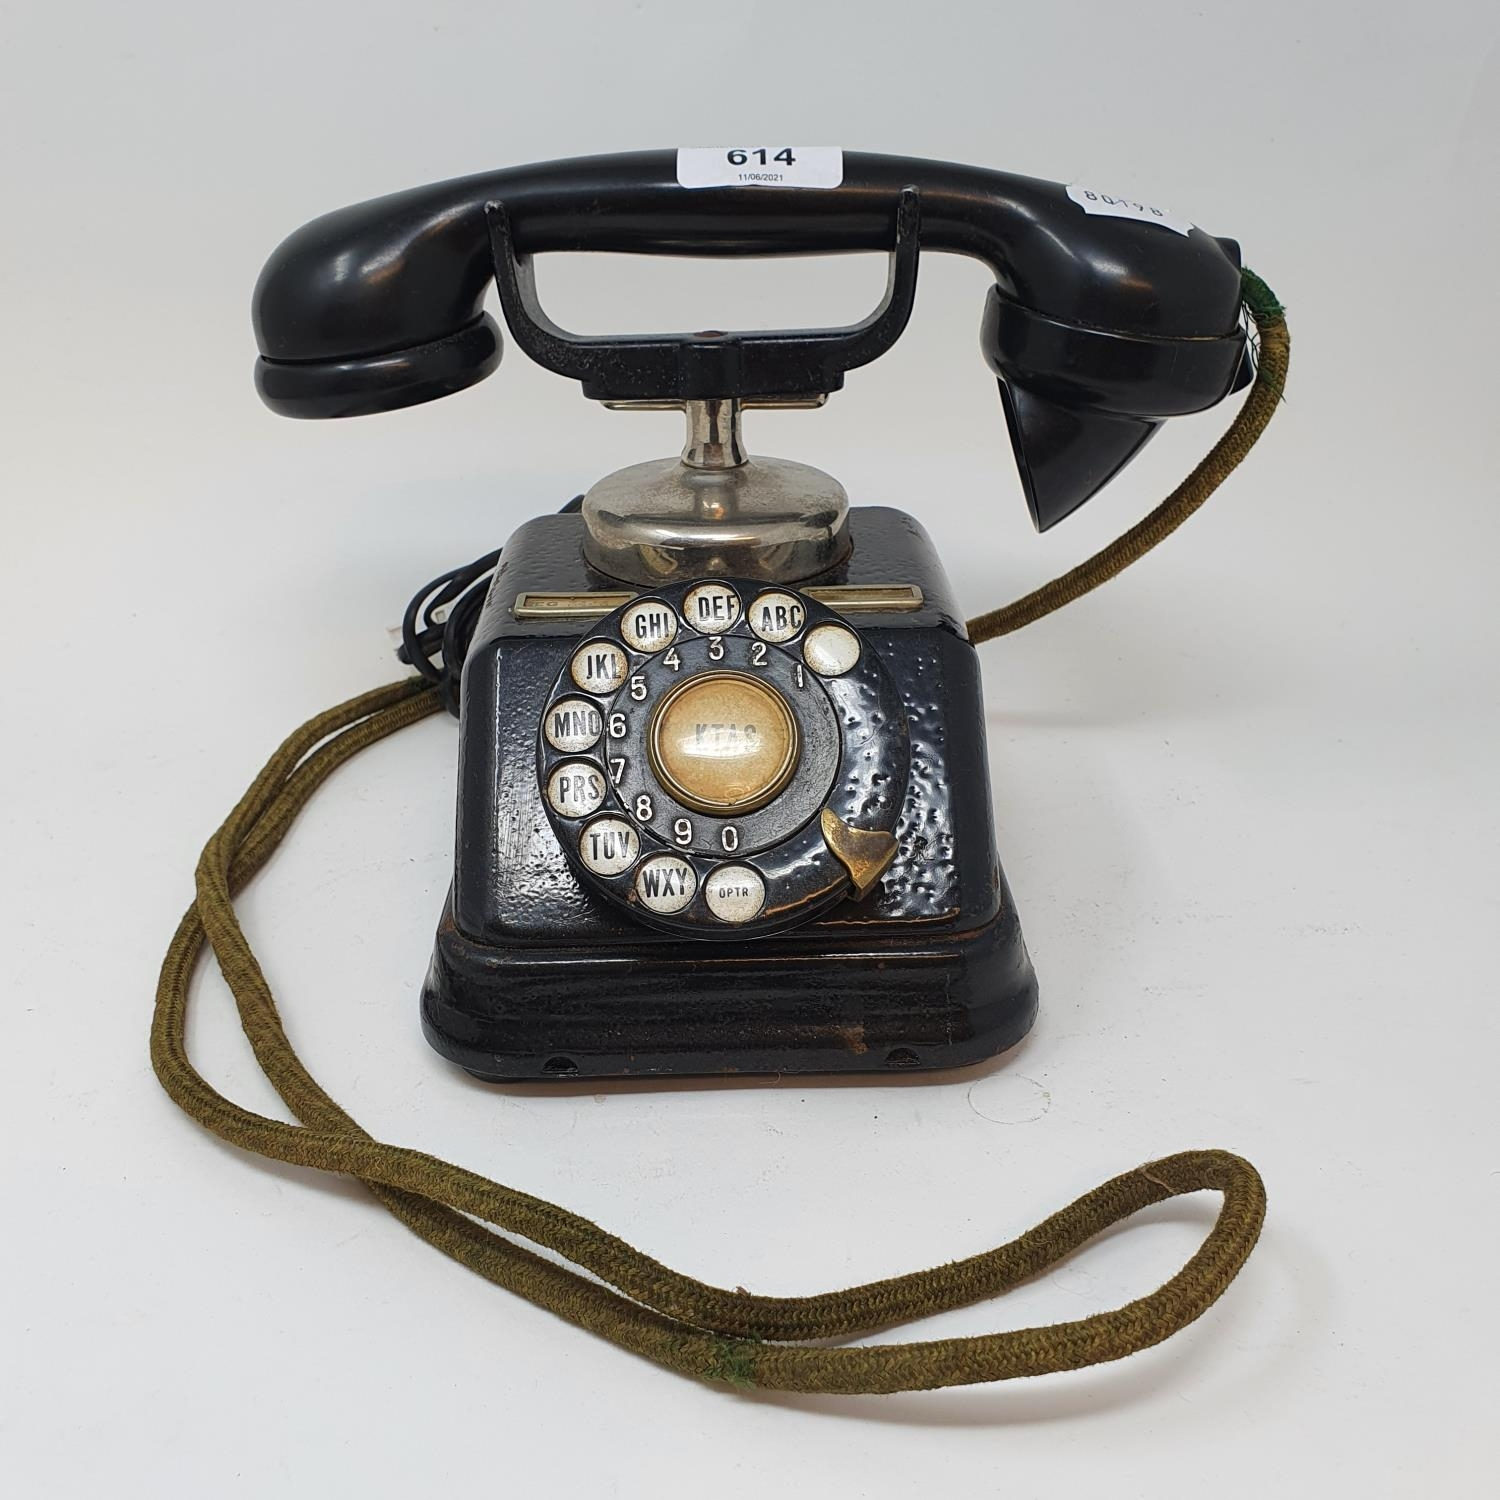 A Danish black dial phone 1930s converted